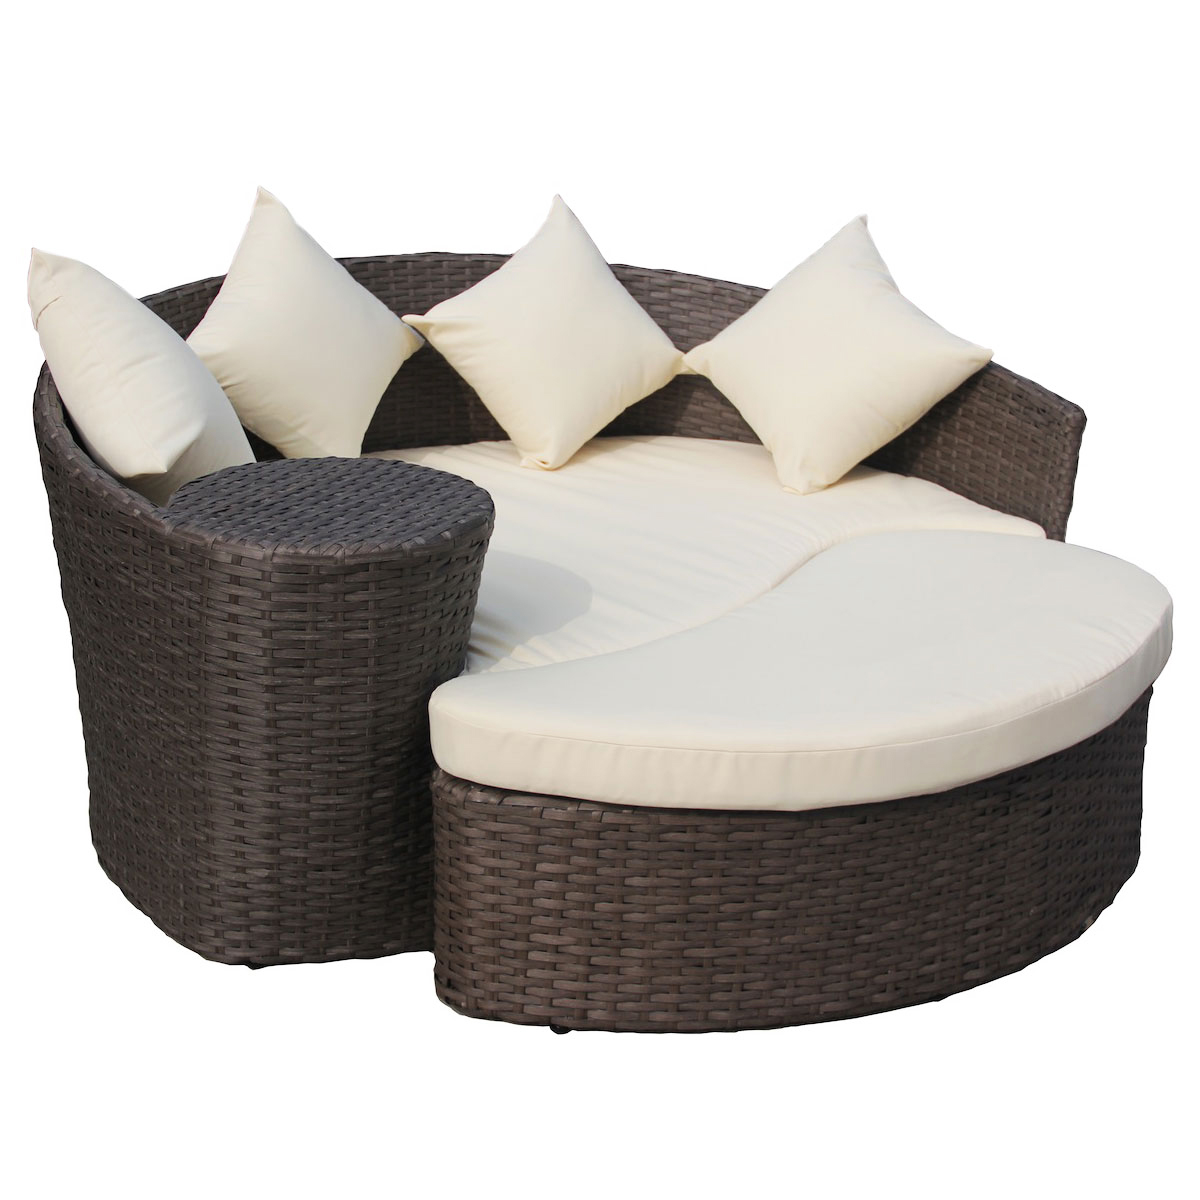 Curved Rattan Garden Sofa: Wicker Rattan Curved Day Bed / Sofa & Footstool